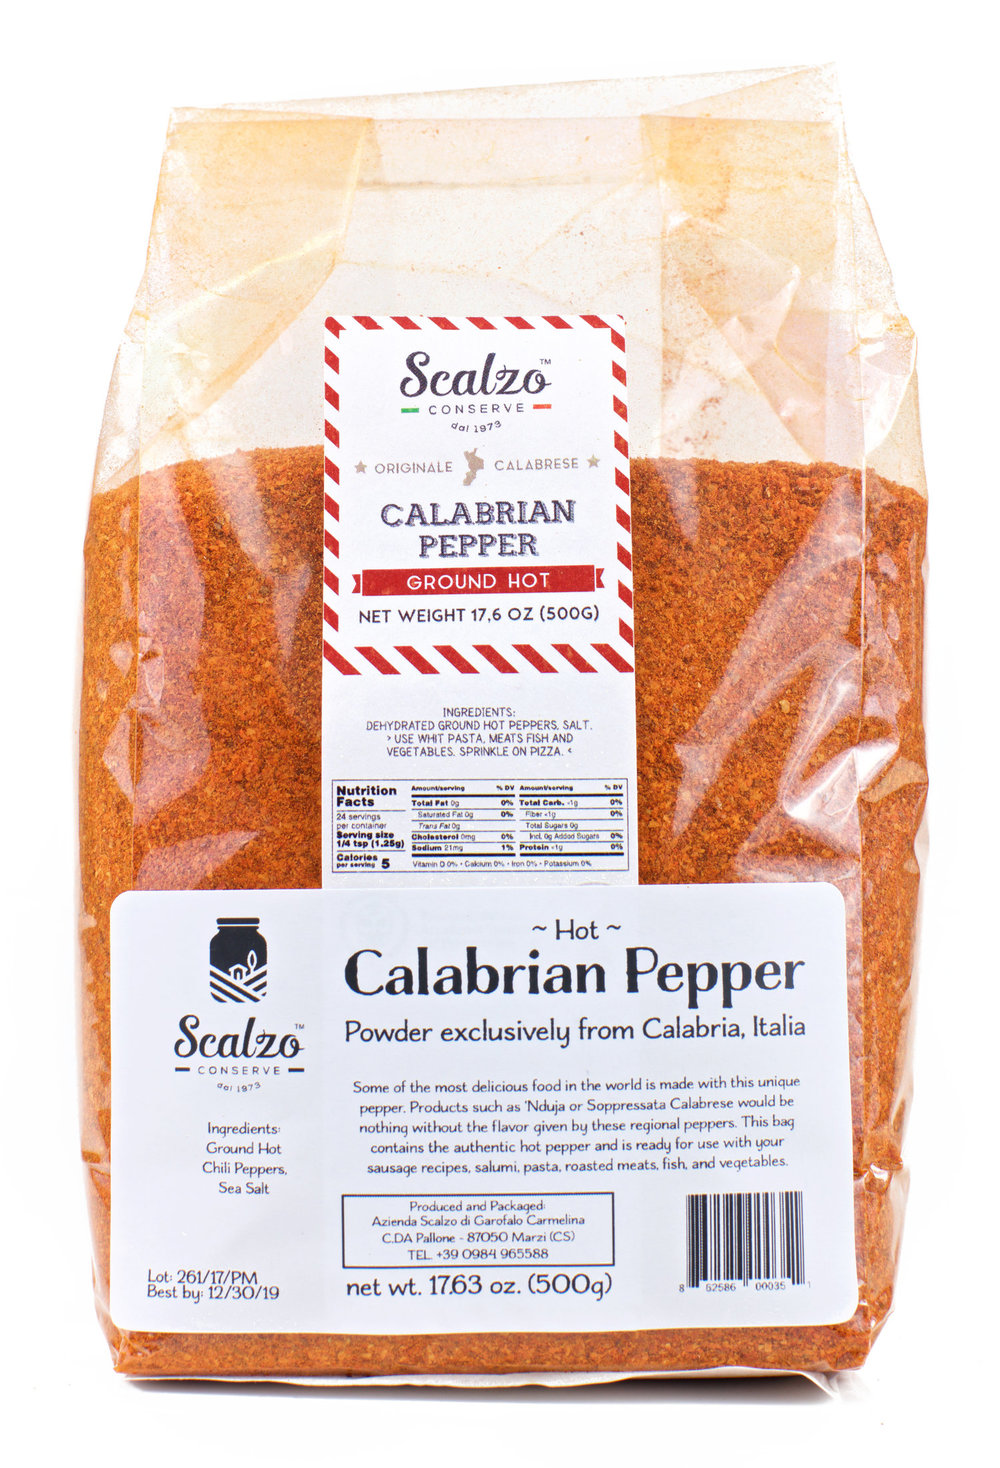 - While it may be a different name it is the same great product we have always sold. Scalzo Conserve brand is the highest quality hot Calabrian pepper powder we carry, and much more complex than our Imepa pepper powder.